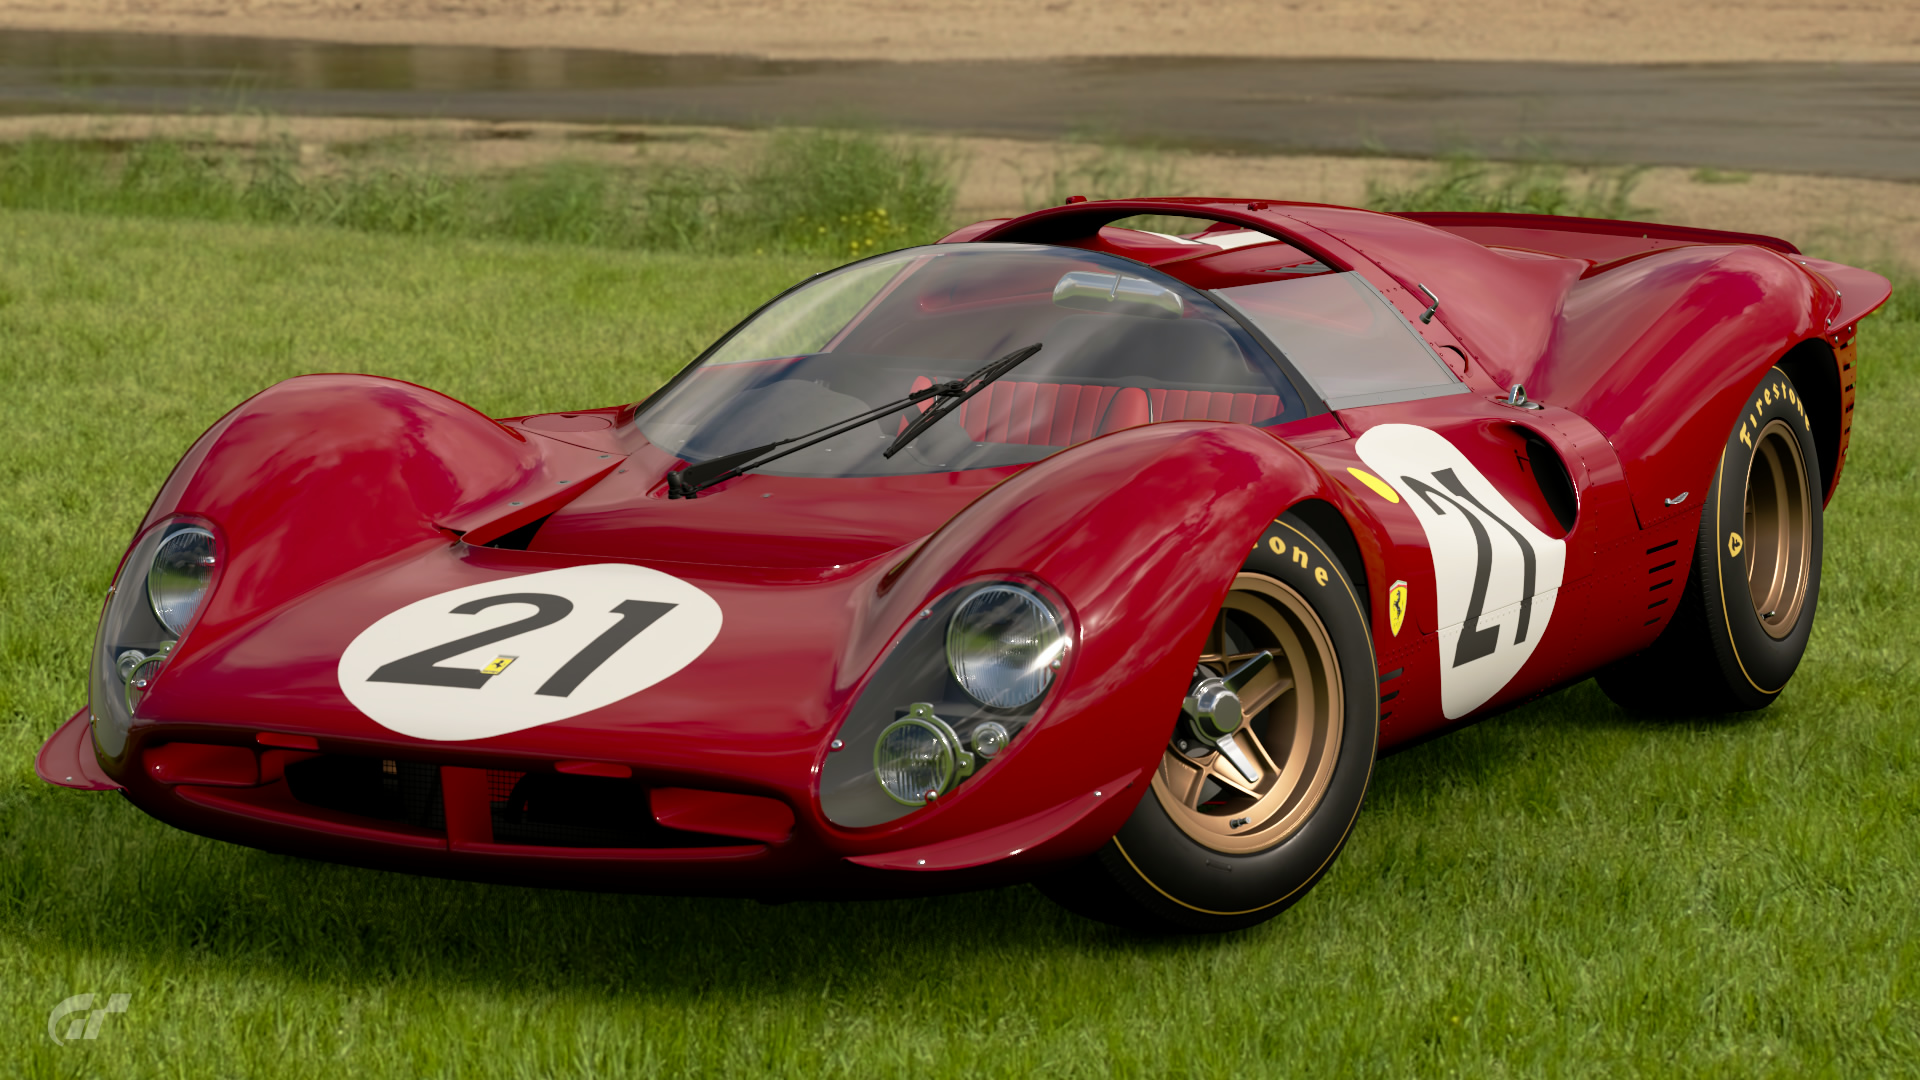 ferrari 330 p4 race car 39 67 gran turismo wiki gran. Black Bedroom Furniture Sets. Home Design Ideas